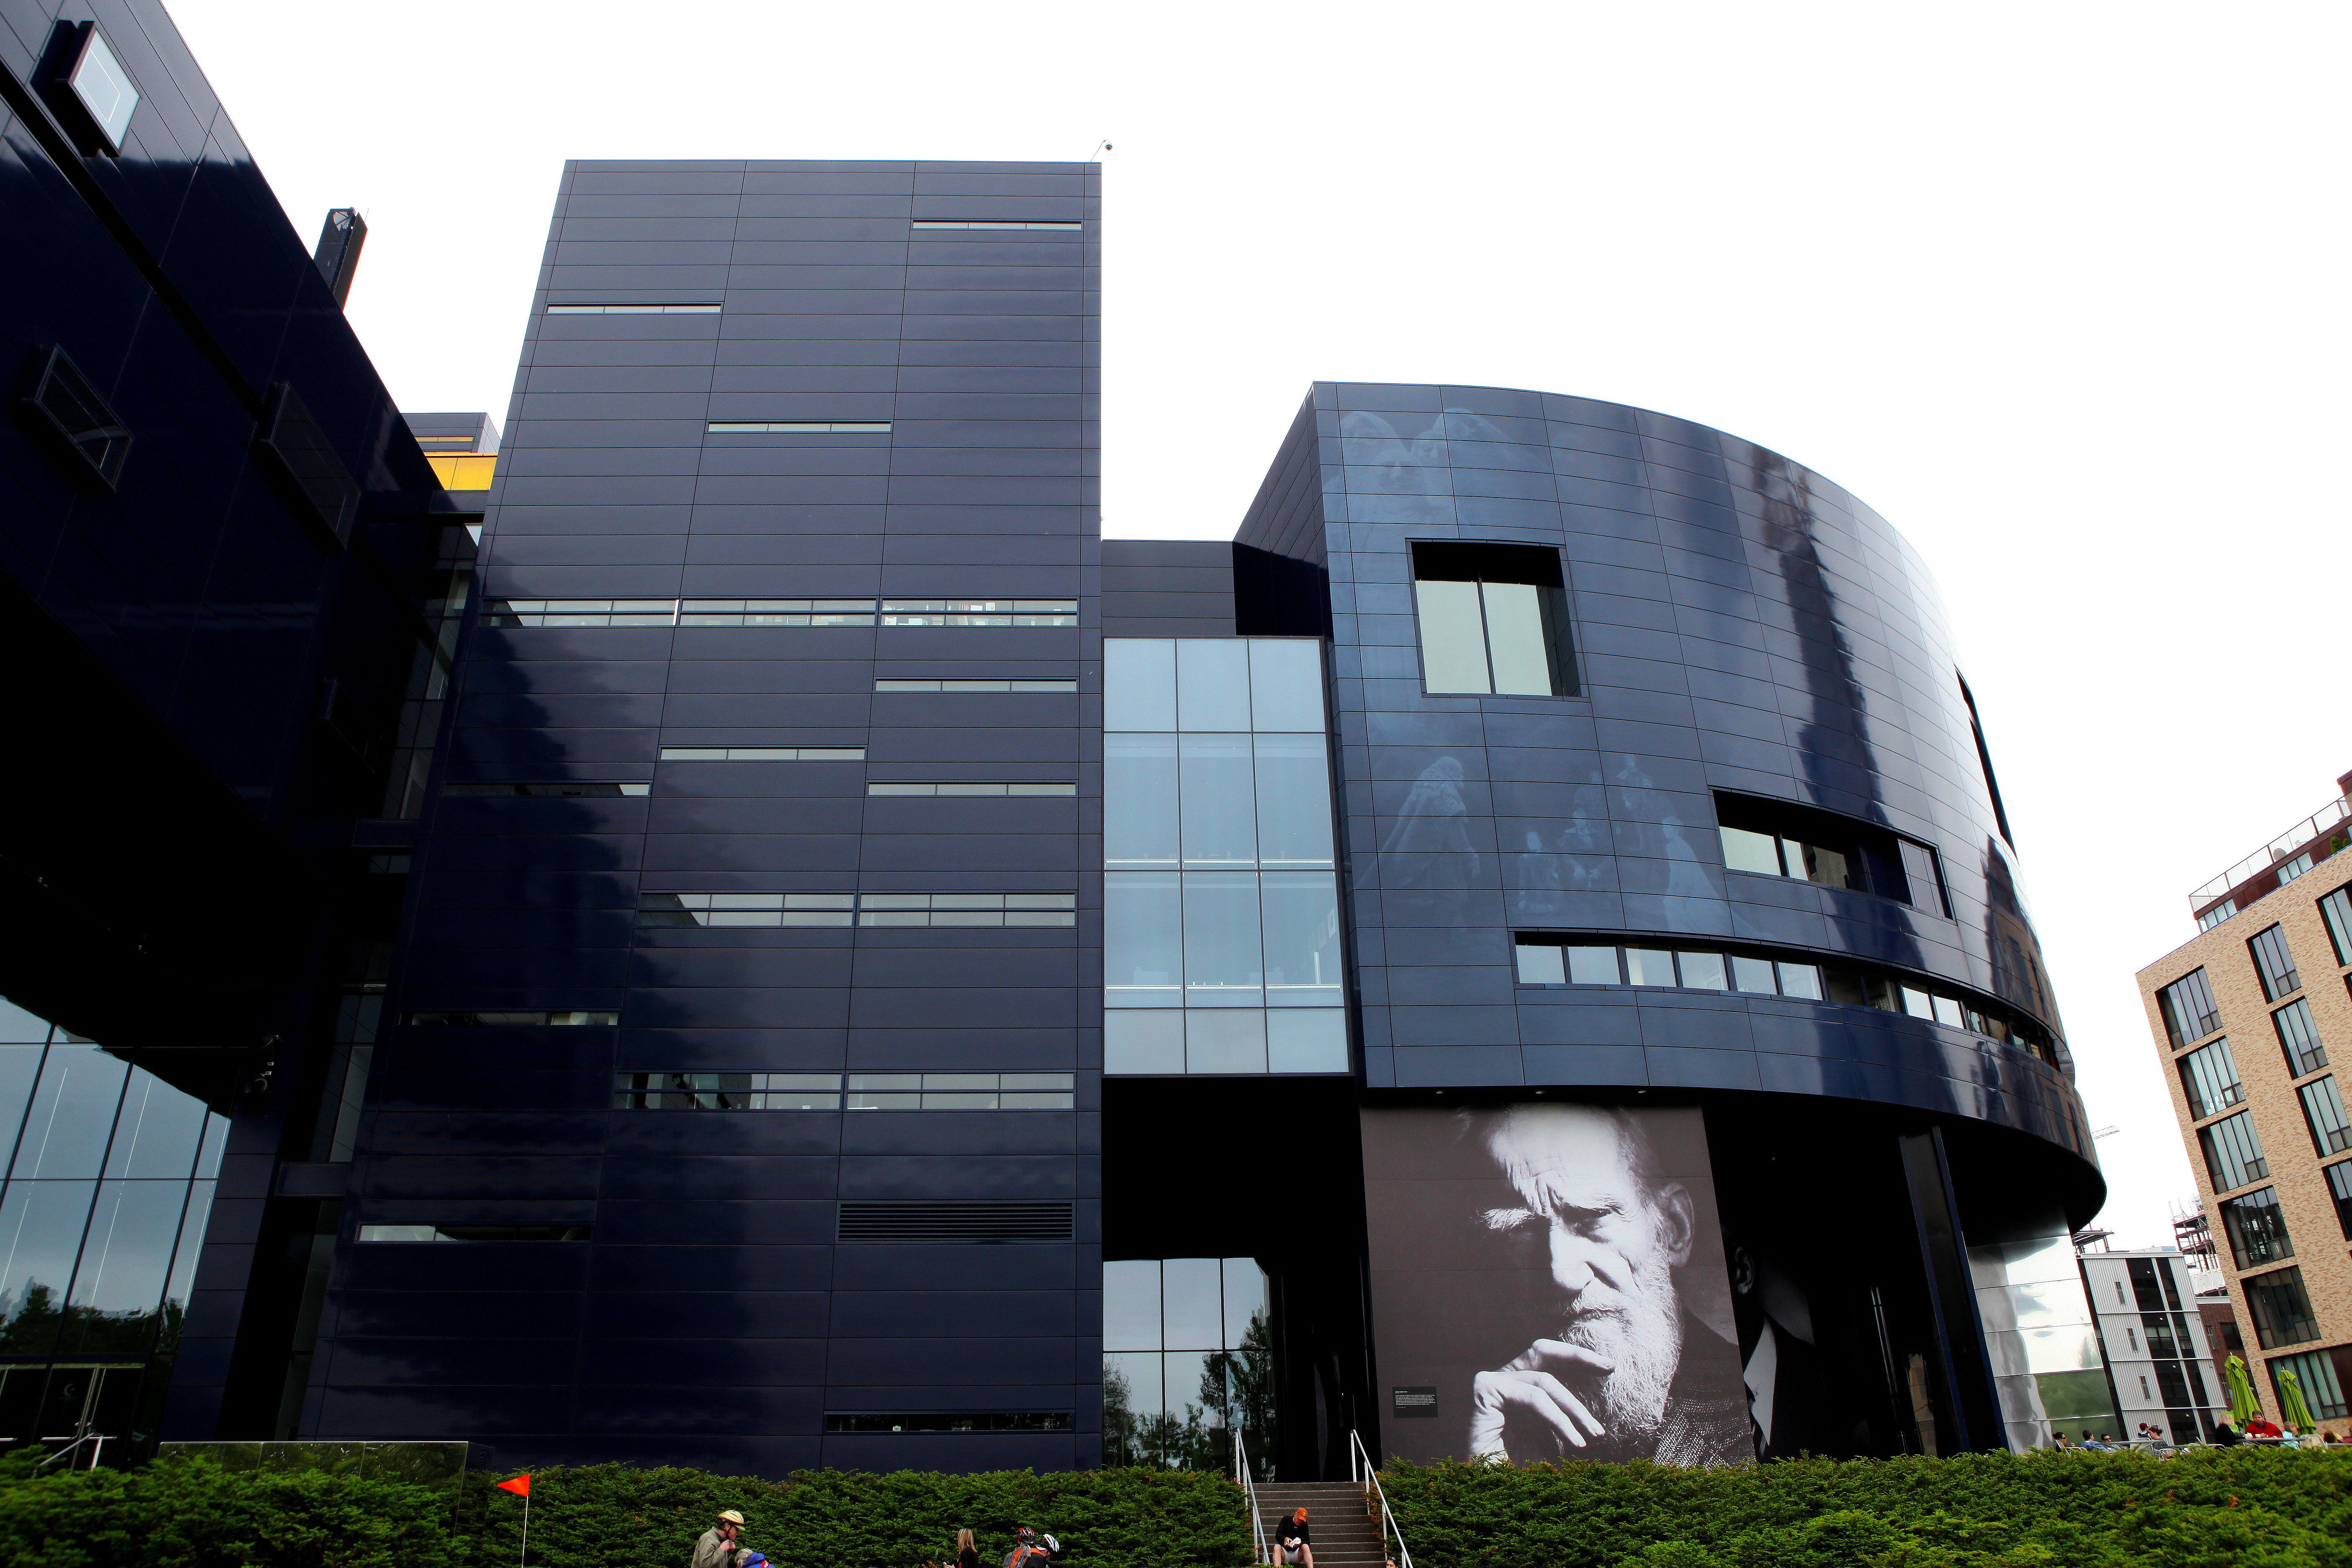 Jean Nouvels Guthrie Theater In Minneapolis